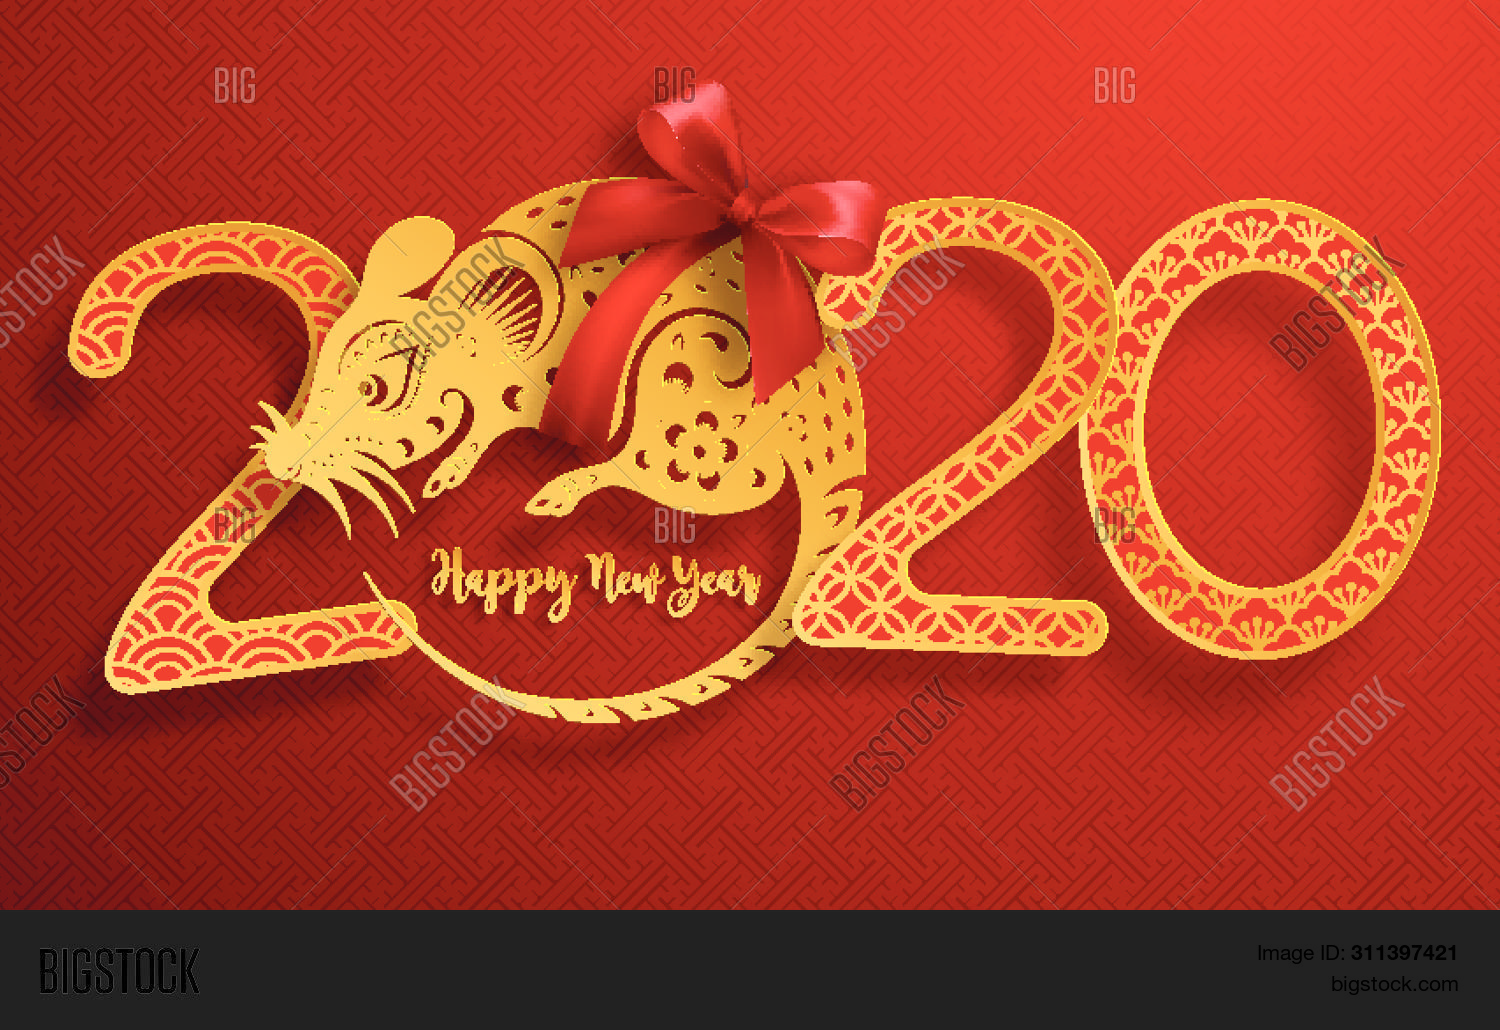 Chinese New Year 2020.Chinese New Year 2020 Vector Photo Free Trial Bigstock